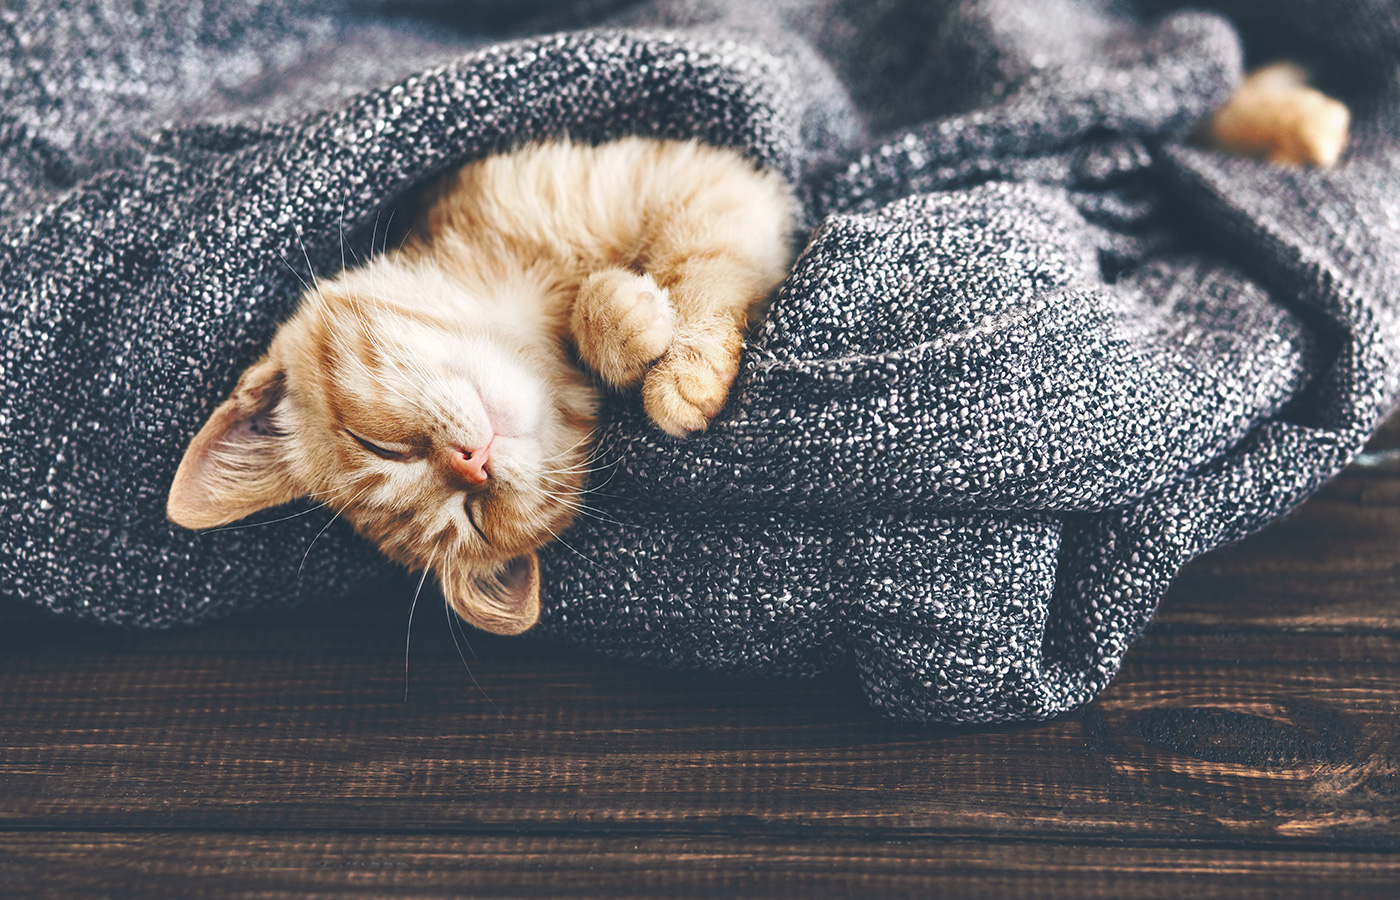 Cute little ginger kitten is sleeping in soft blanket on wooden floor - Image